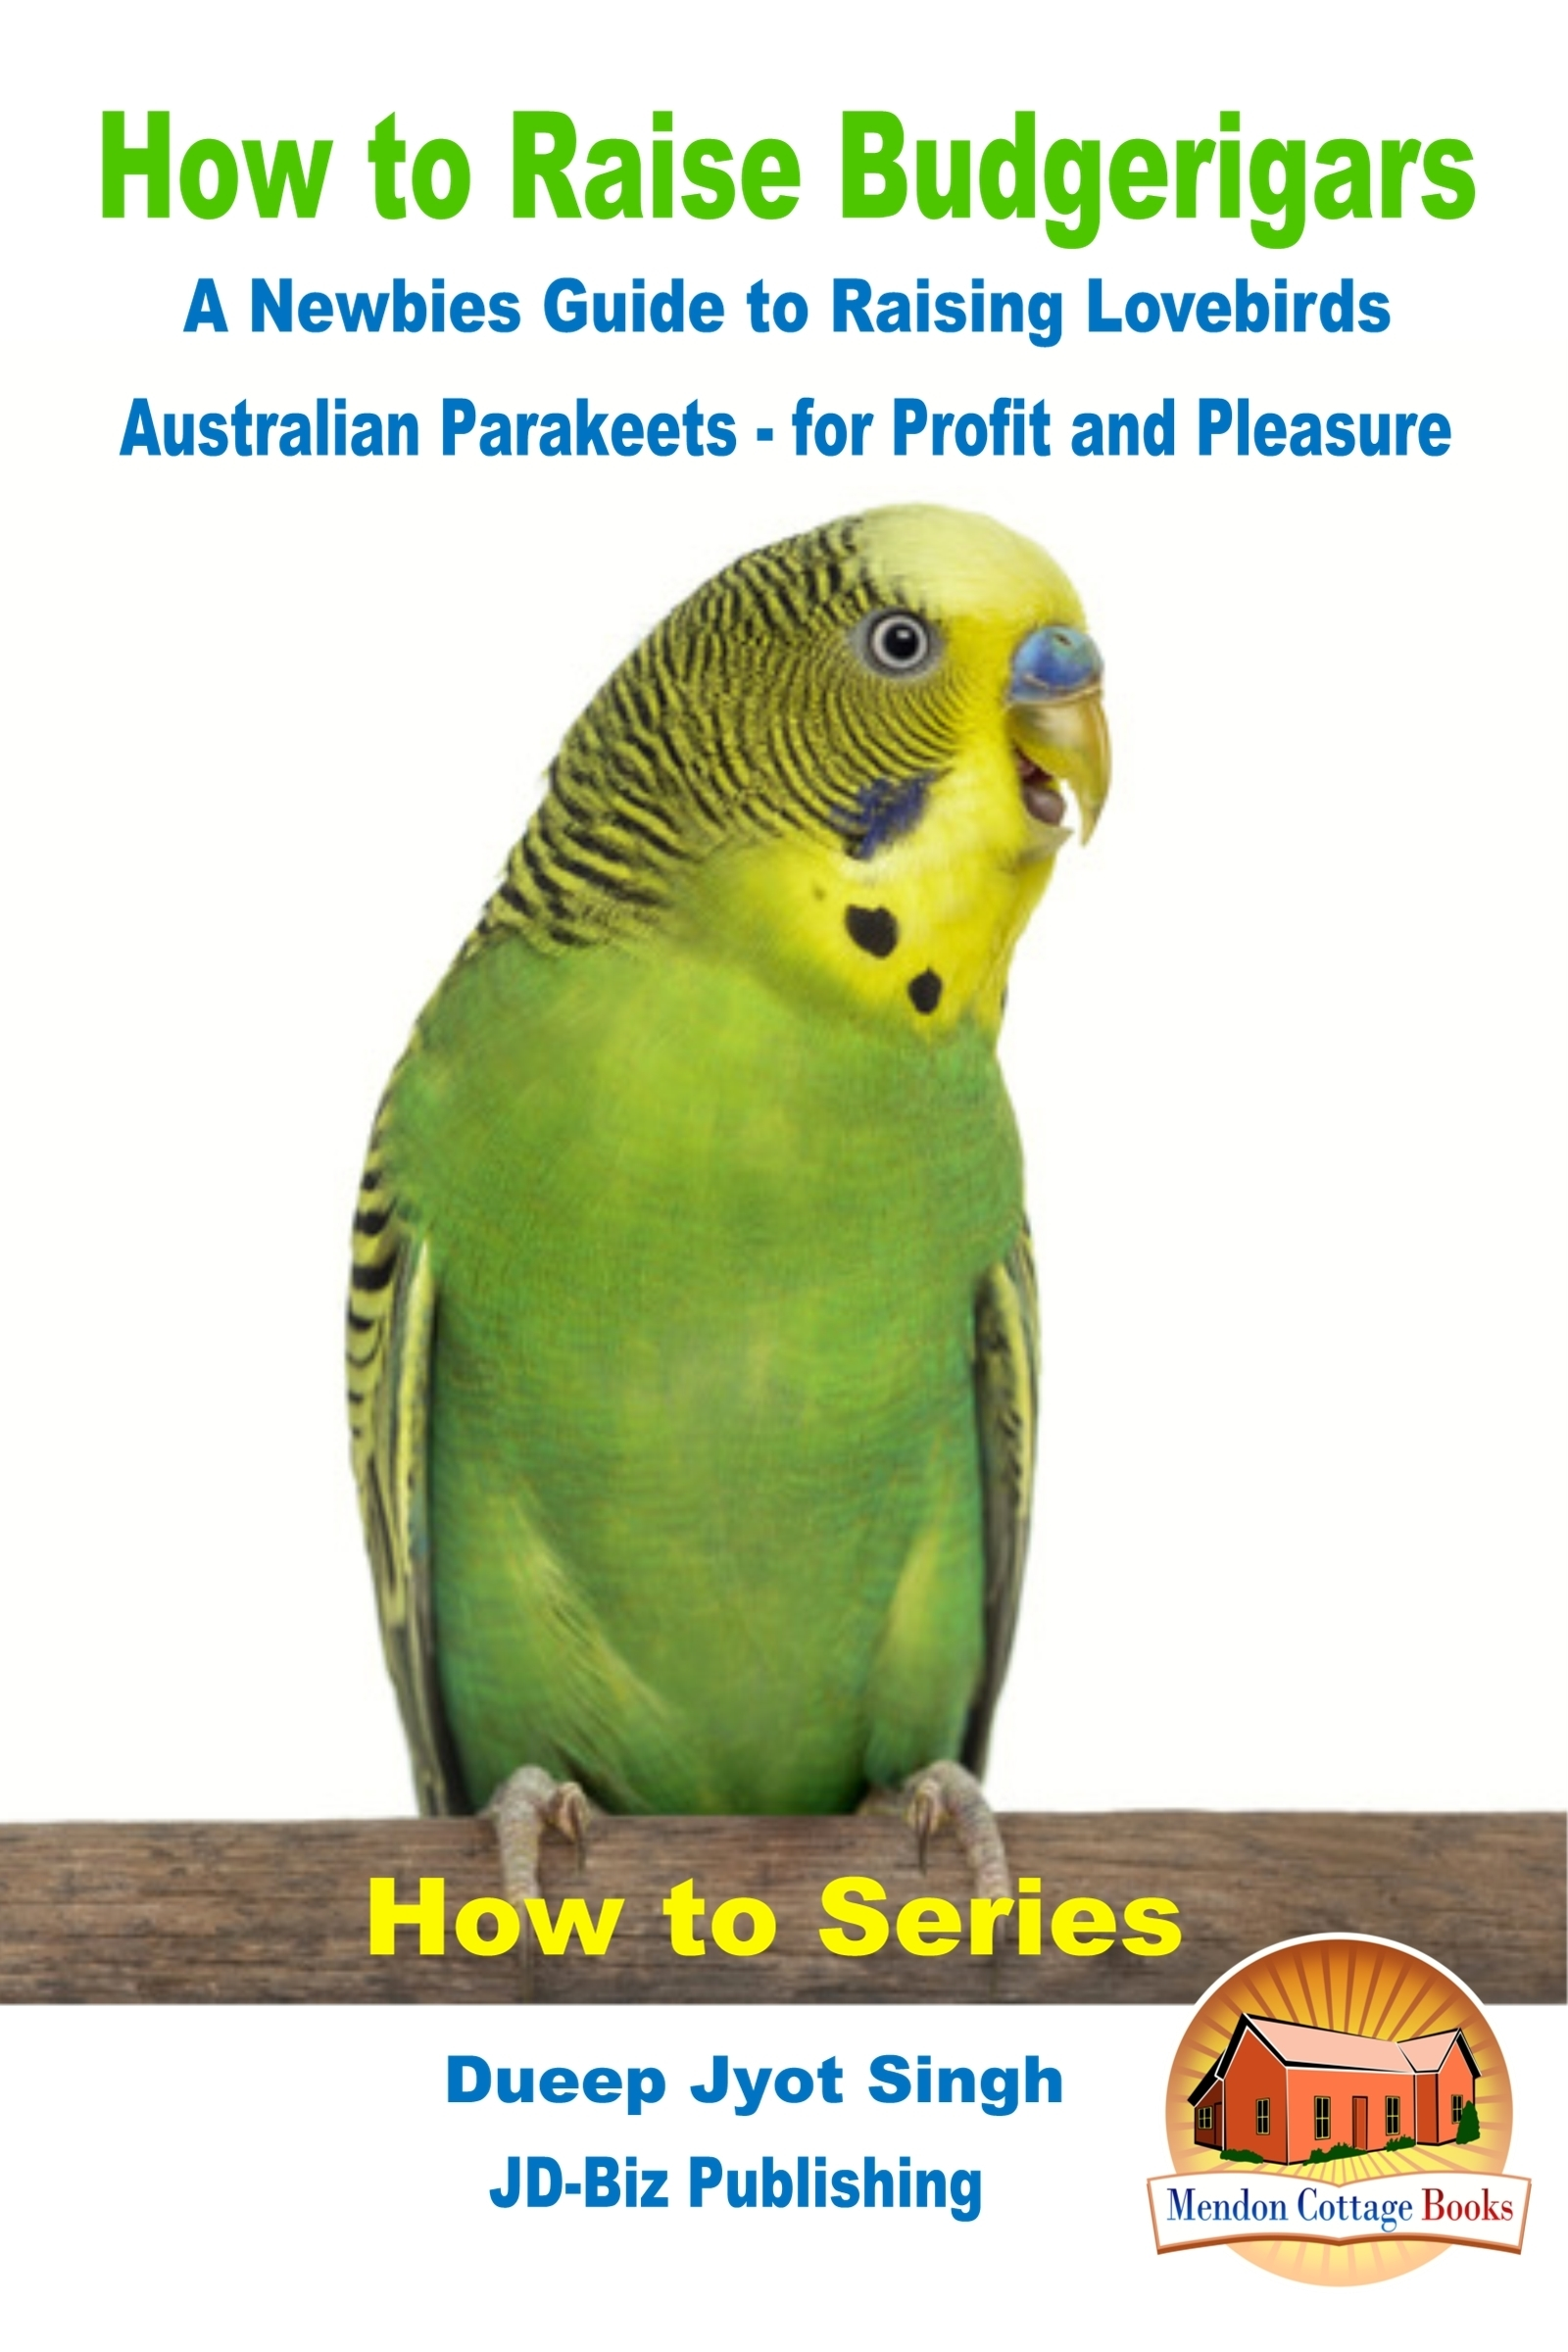 How to Raise Budgerigars: A Newbie's Guide to Raising Lovebirds - Australian Parakeets - for Profit and Pleasure